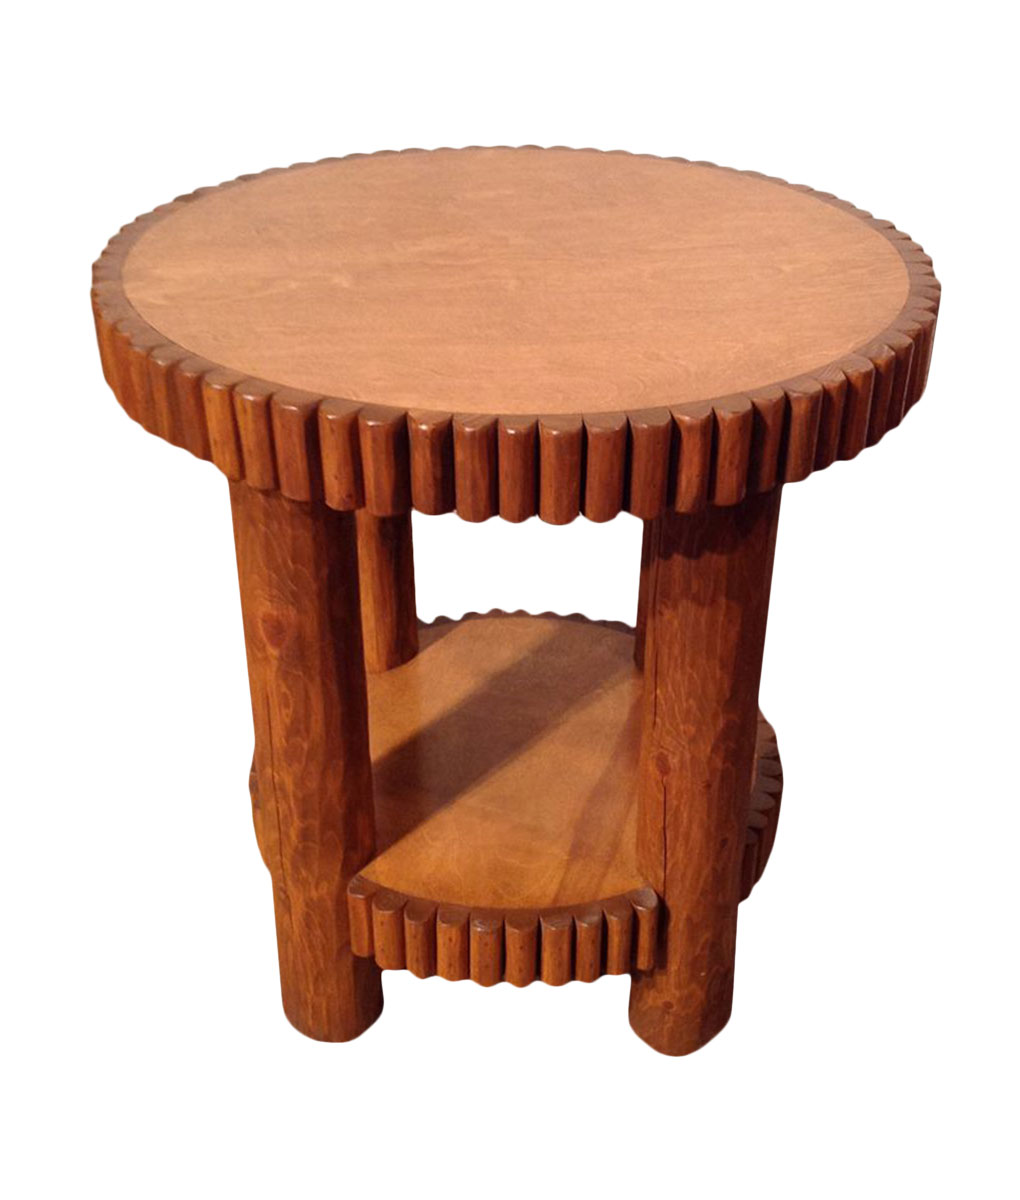 Molesworth Round End Table